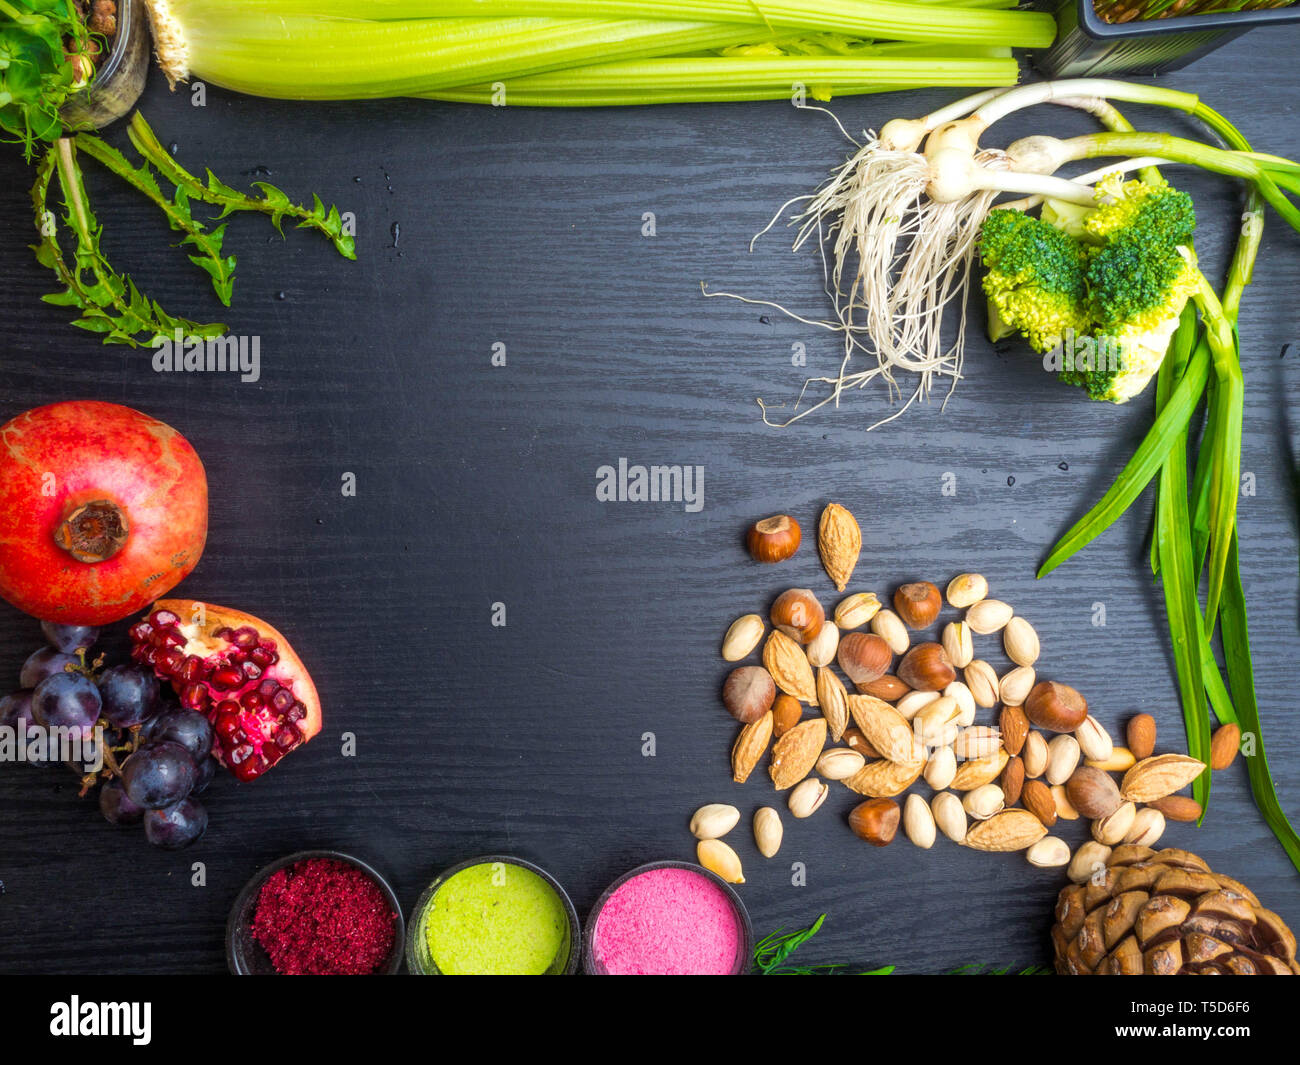 various Super foods, berry powder - strawberry, raspberry, nuts, pomegranate, grape, dandelion and selery, broccolion a wooden background, copy space - Stock Image